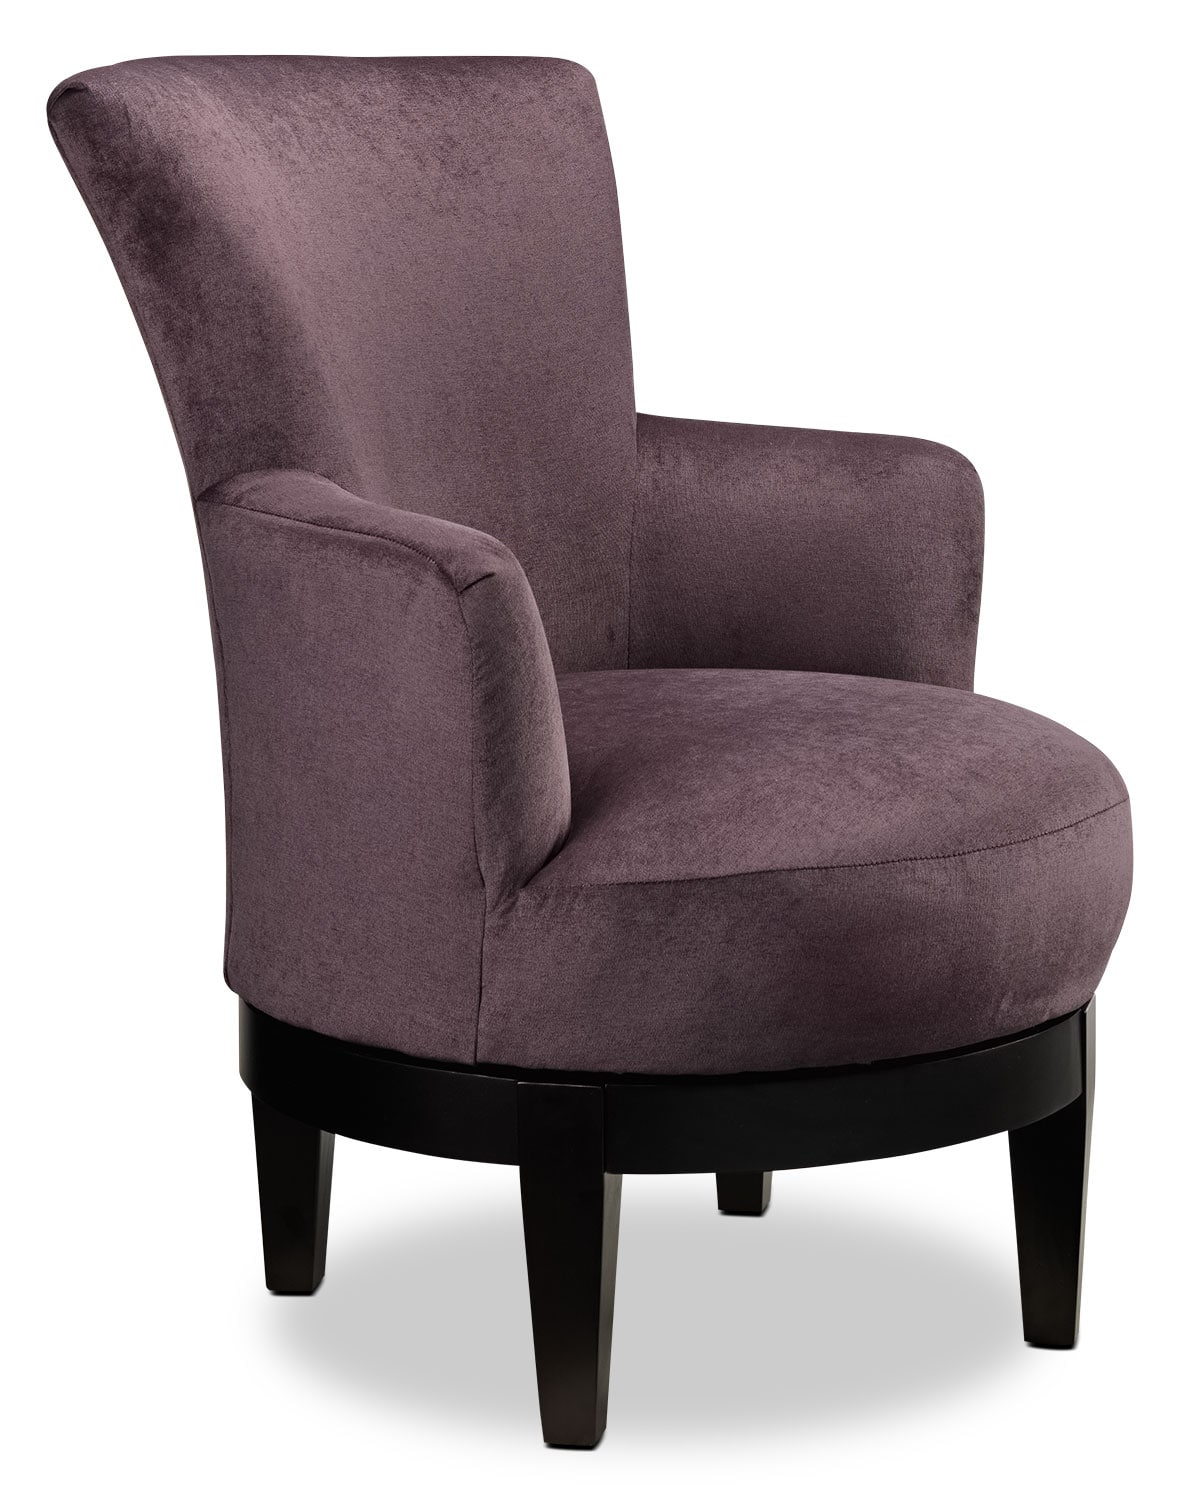 Living Room Furniture - Justine Accent Chair - Plum